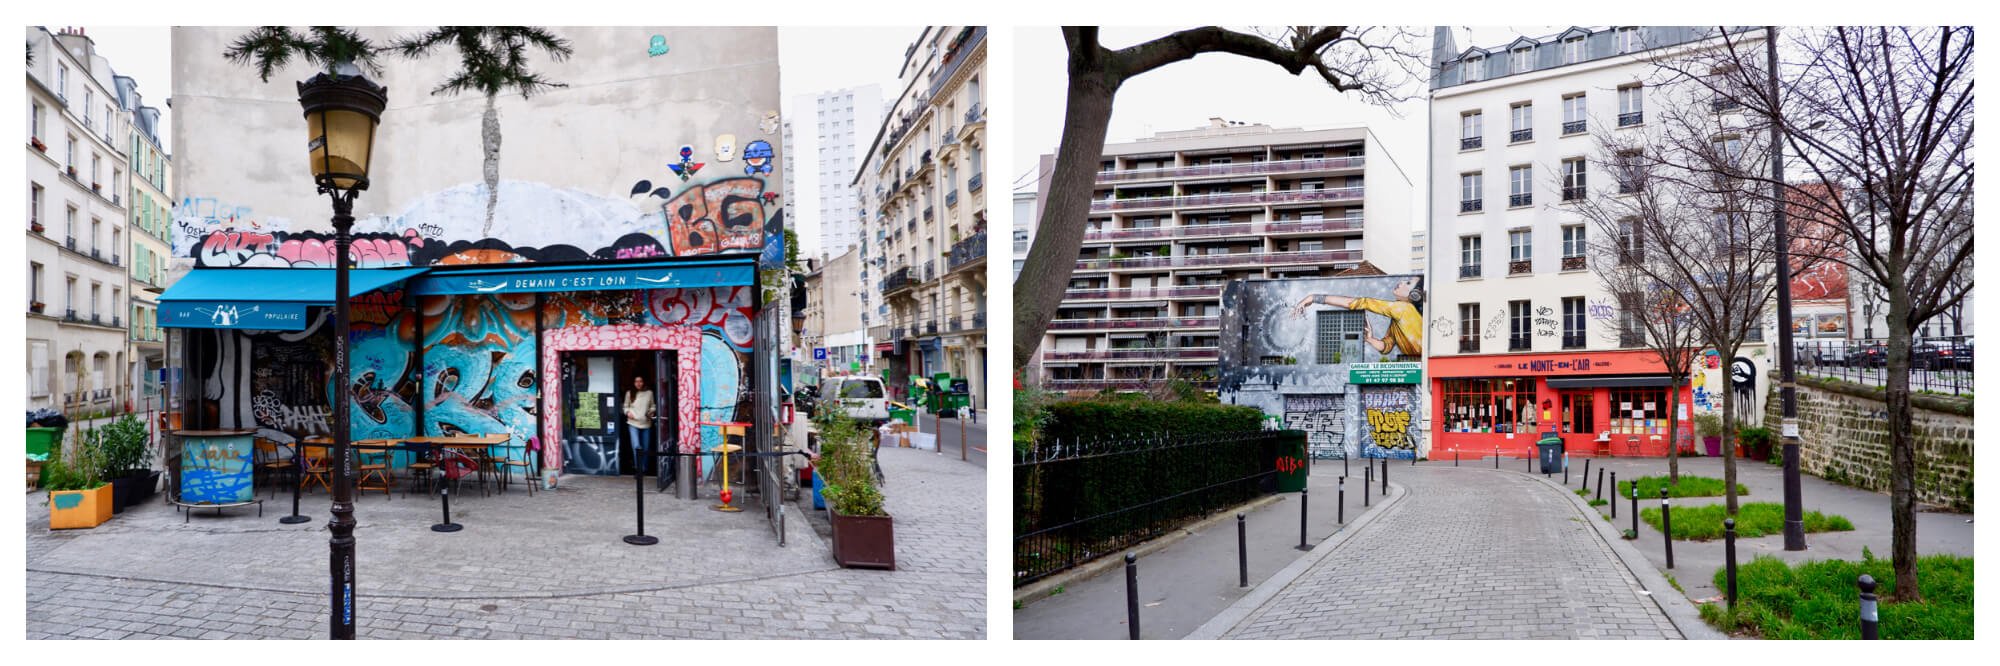 Left: the painted, graffiti covered facade of a bar. There is a lamp post in front and a woman is exiting the bar. Right: A cobblestone road leading to a shop with a red facade and a street art covered facade next door.